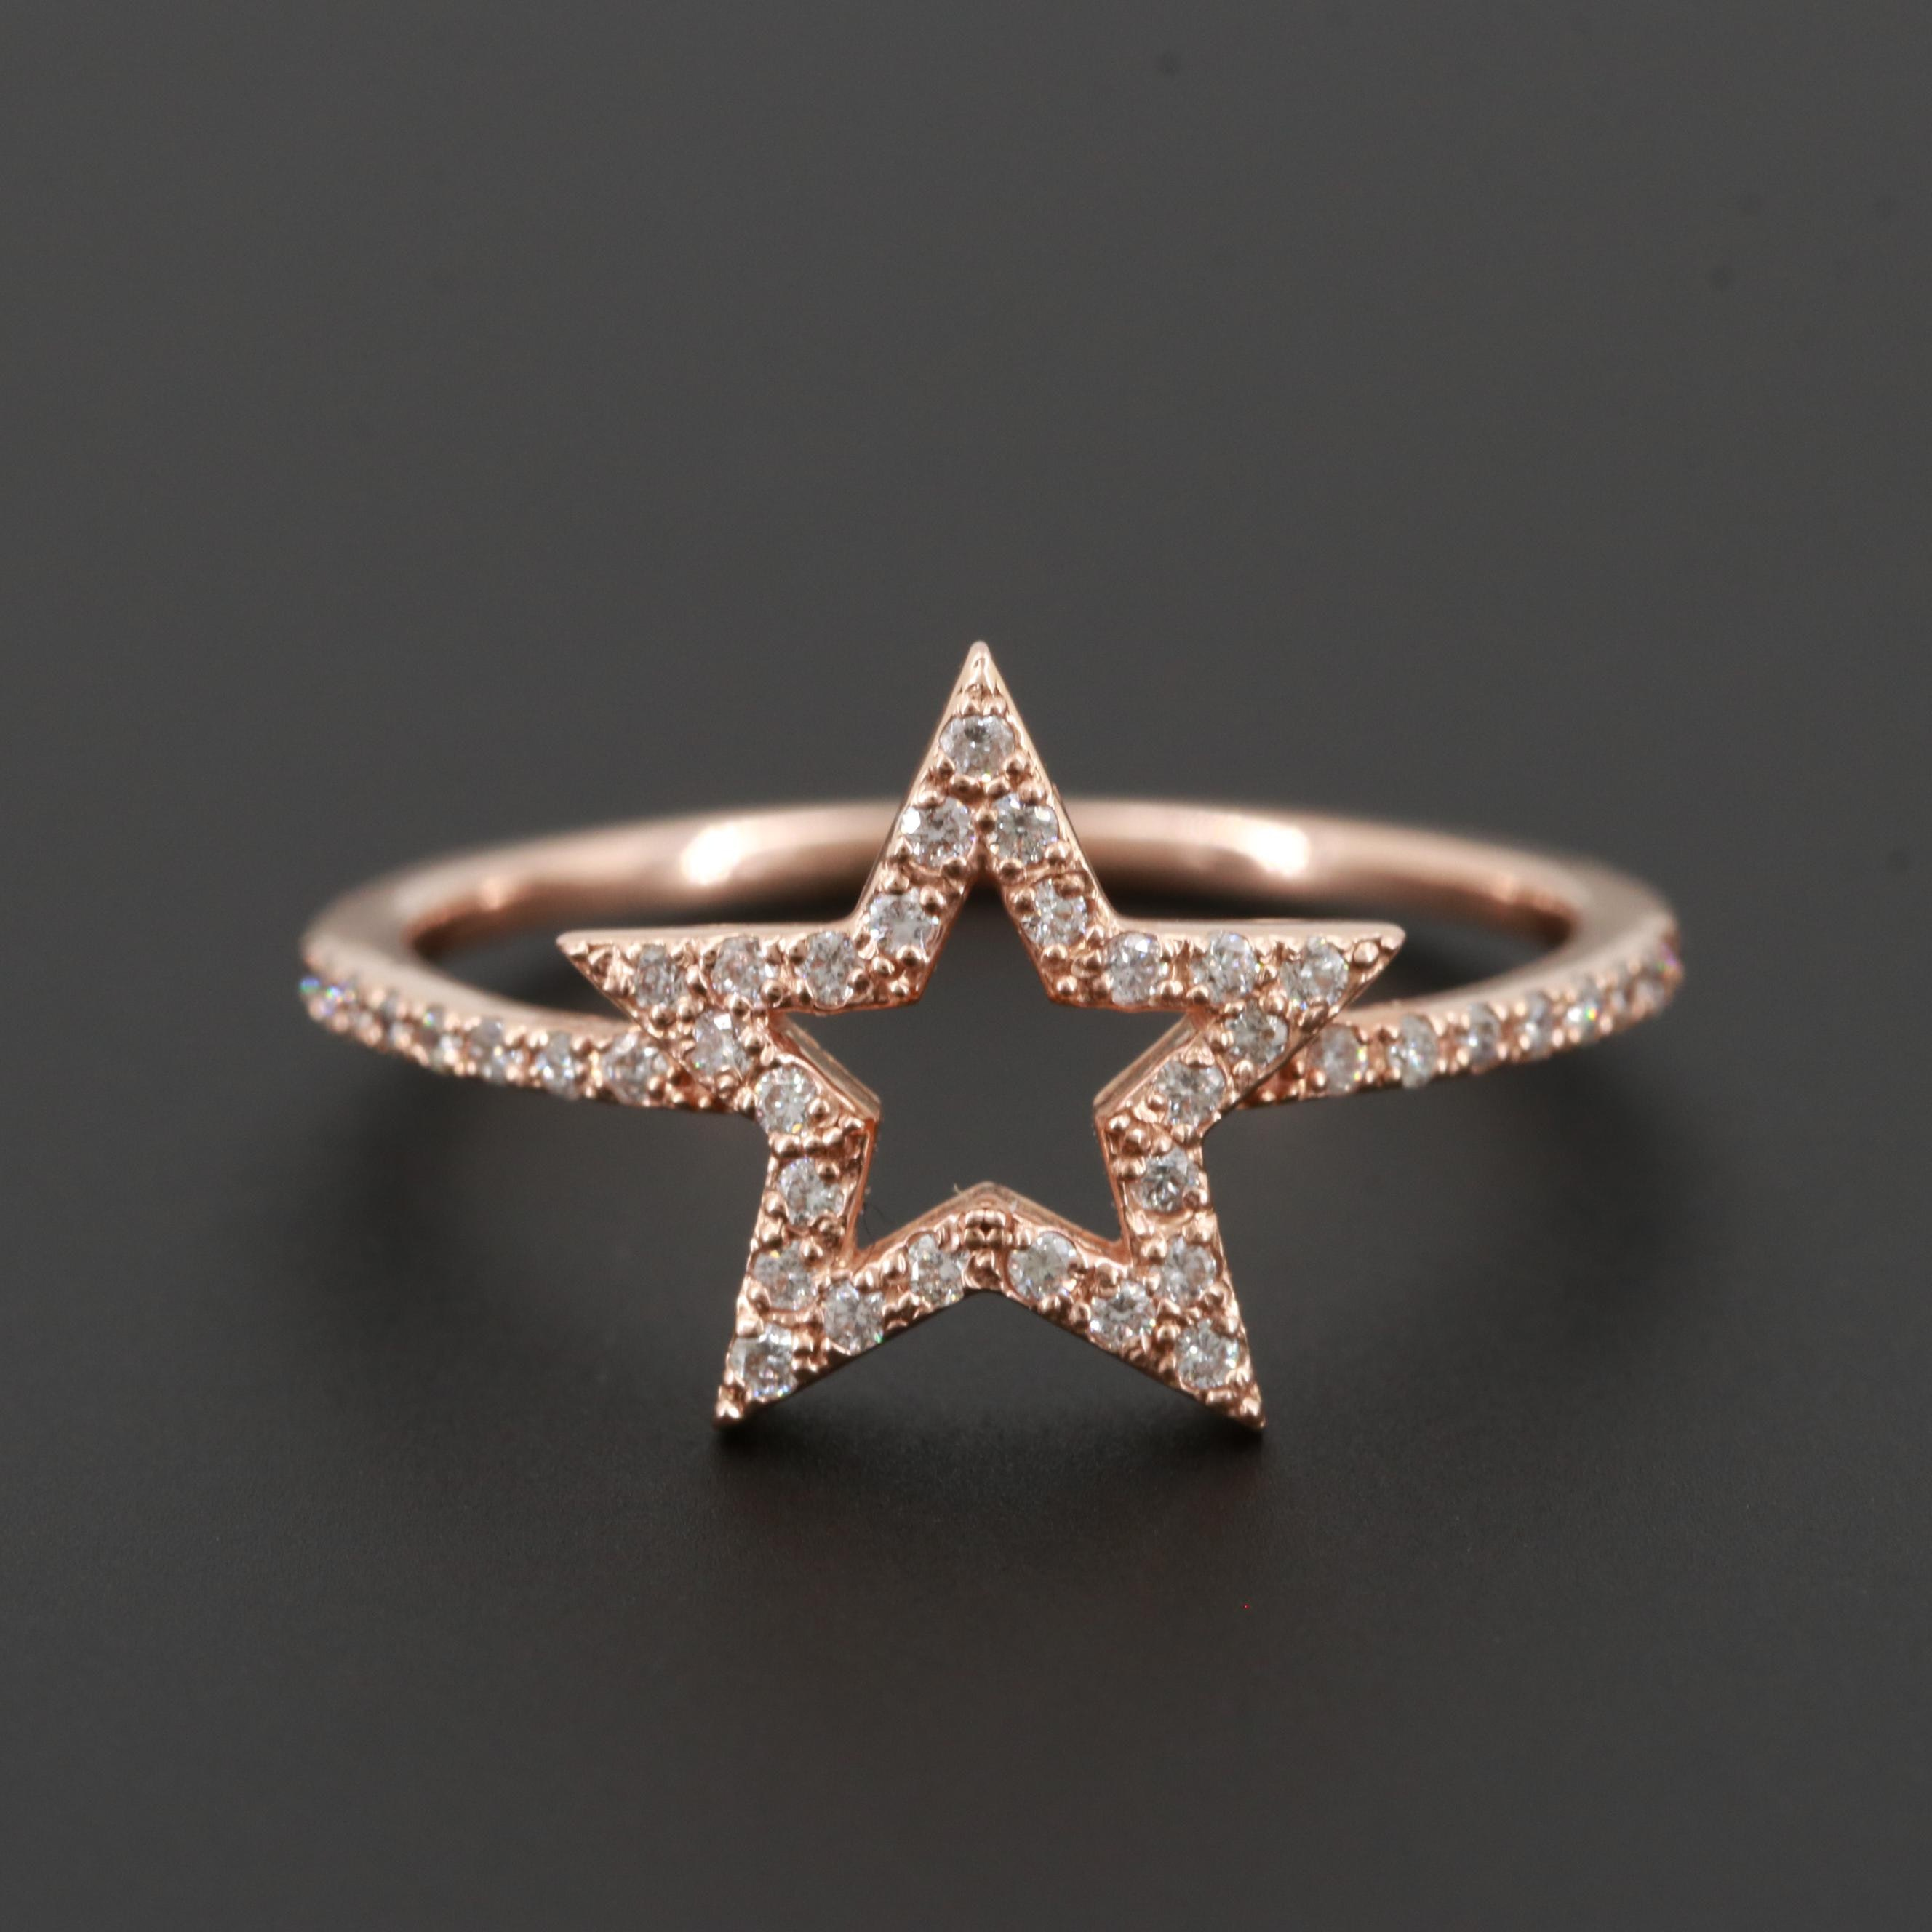 14K Rose Gold Pavé Diamond Star Ring